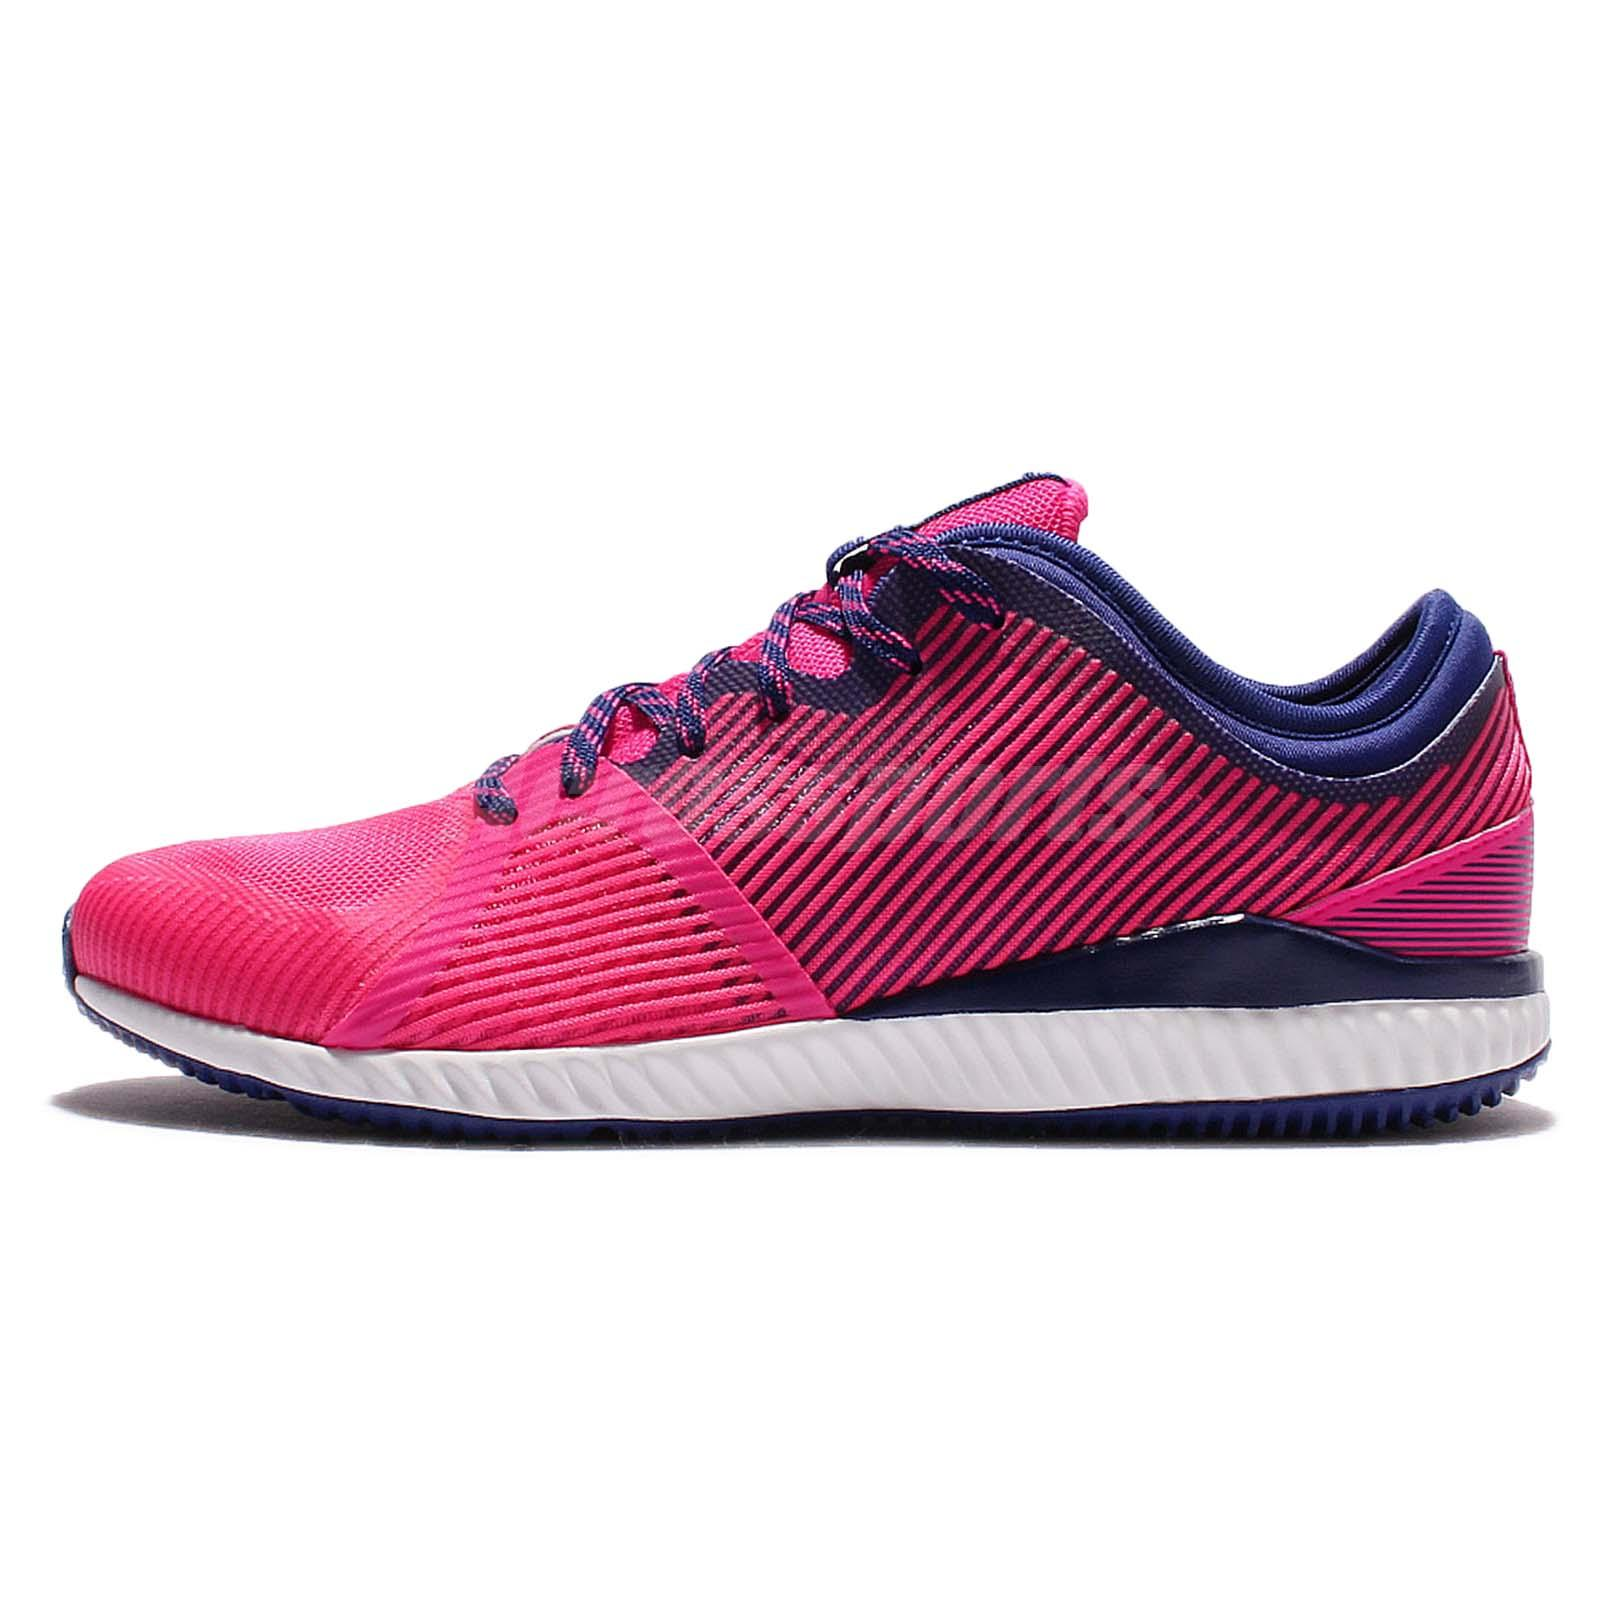 adidas CrazyMove Bounce W Pink Blue Women Training Weightlifting Shoes AQ4216